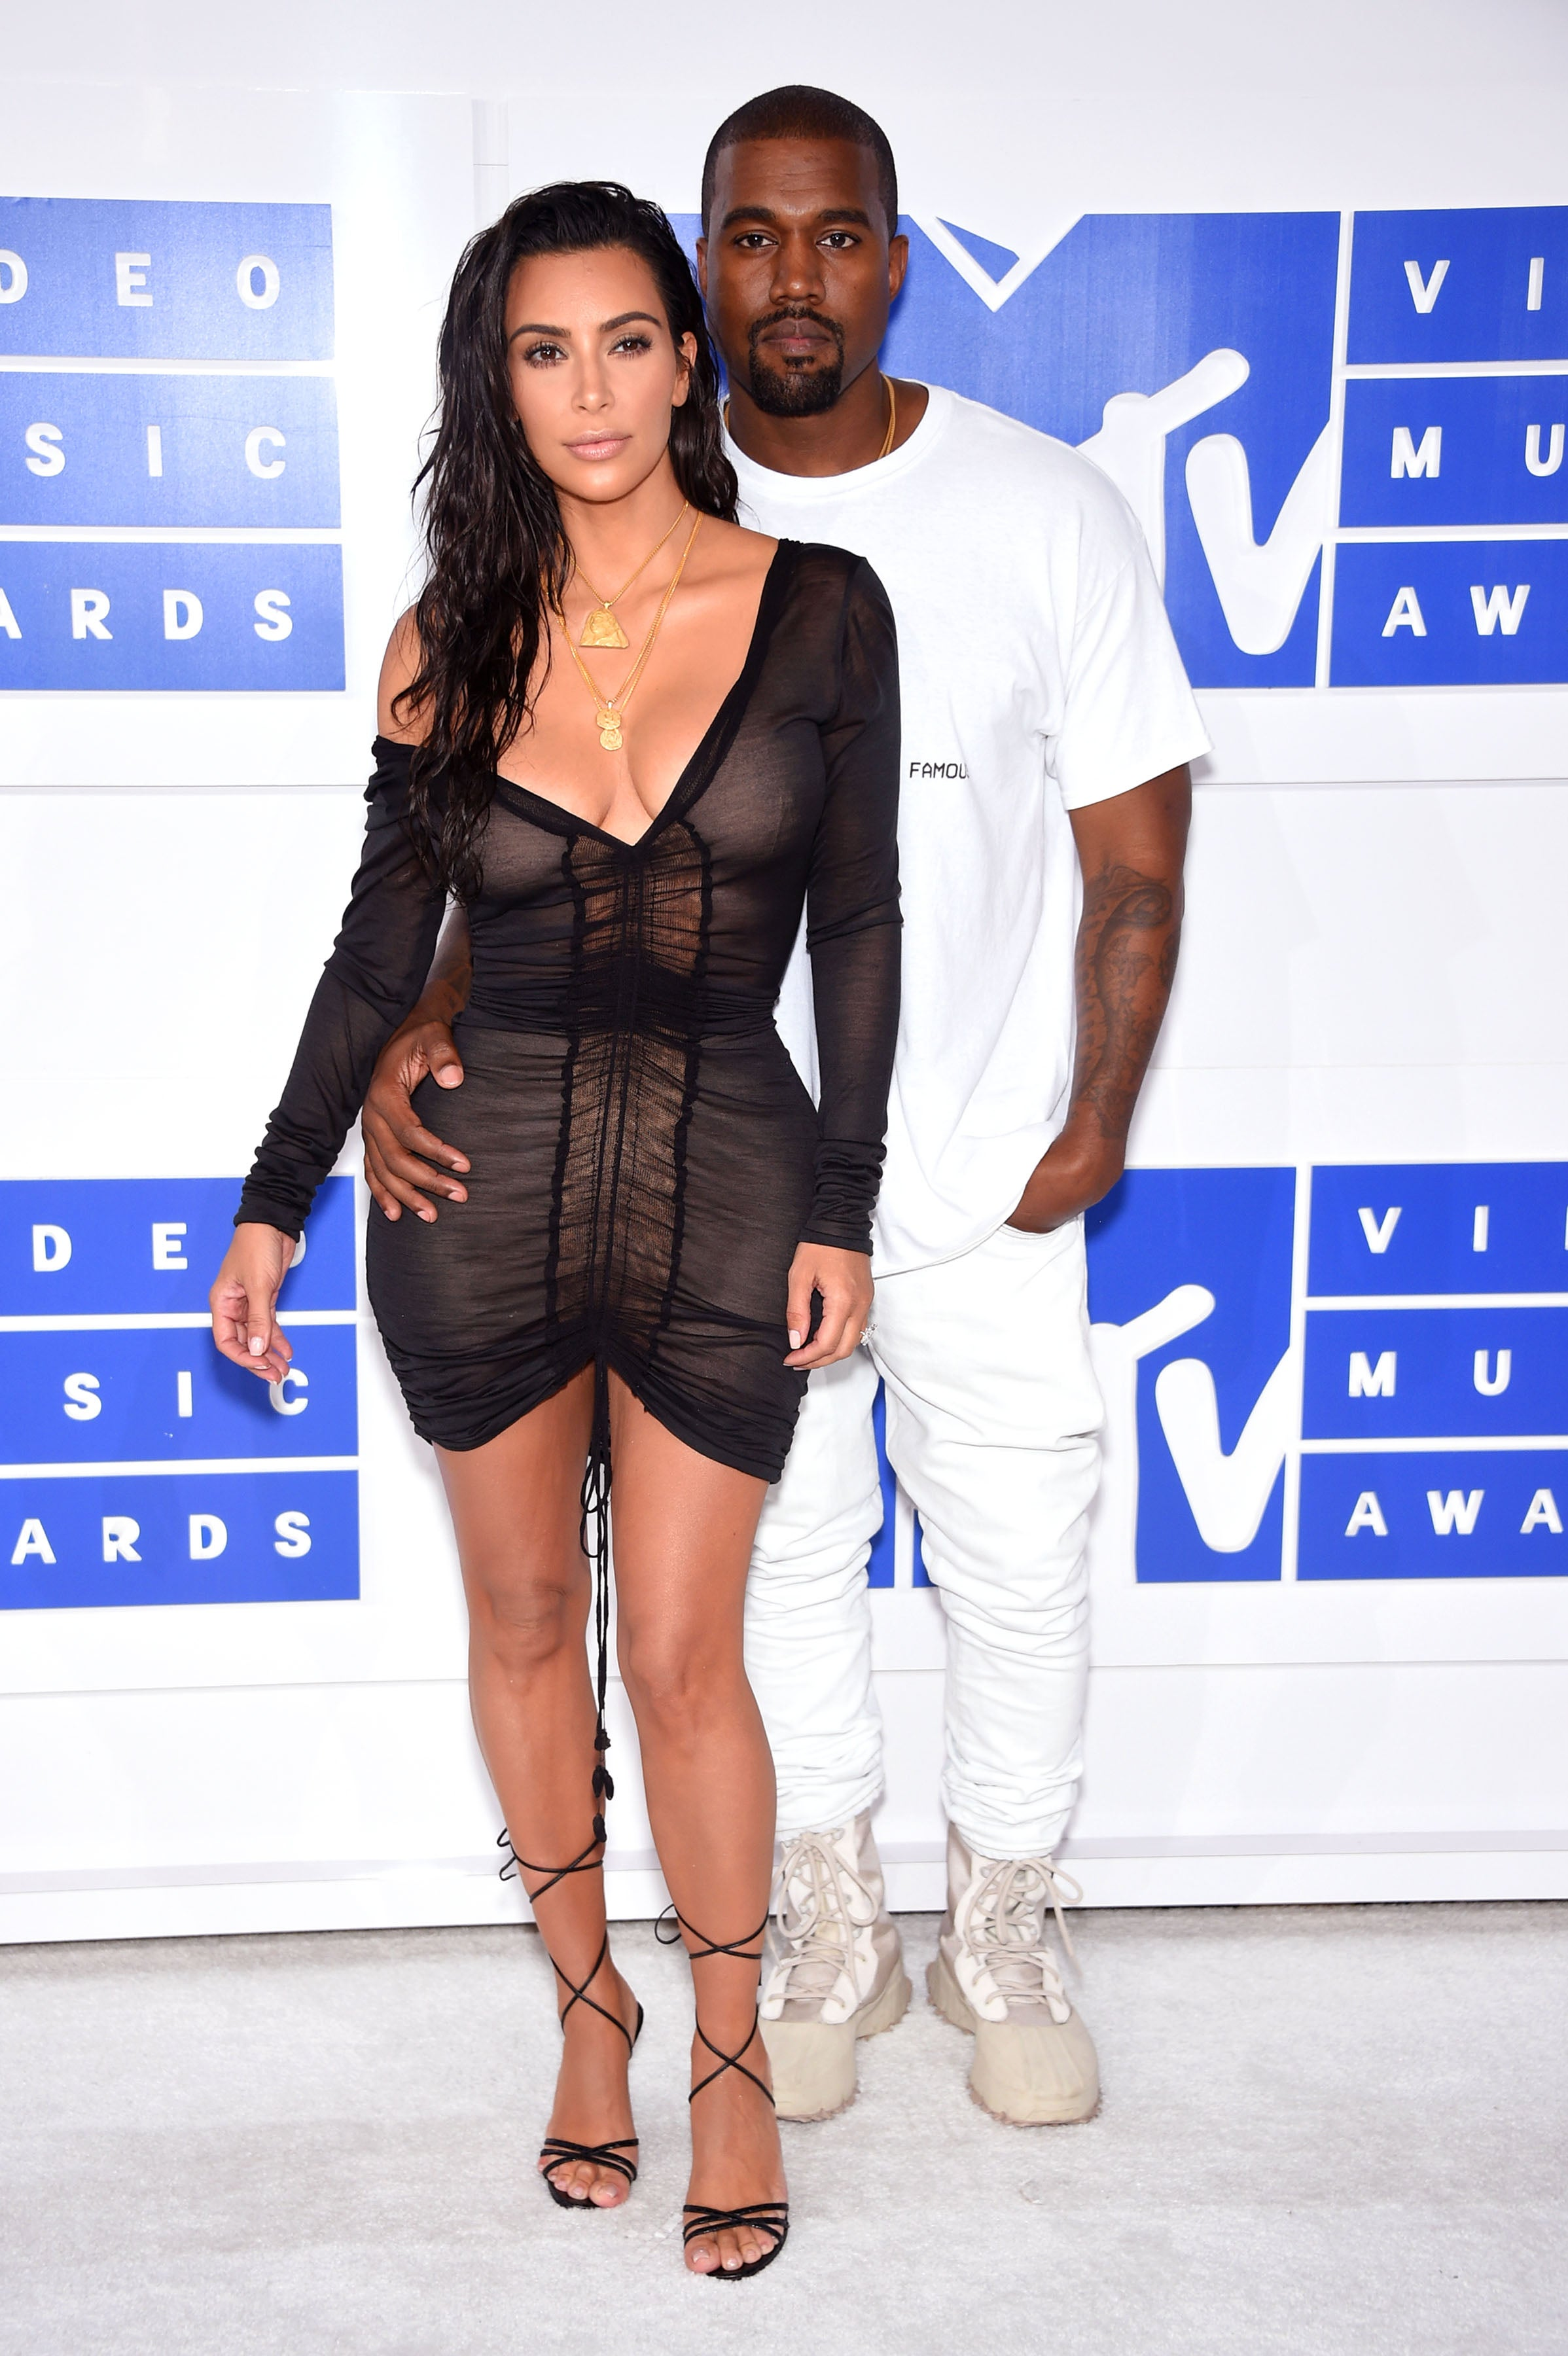 Kanye West And Kim Kardashian West Wow On The VMAs Red Carpet